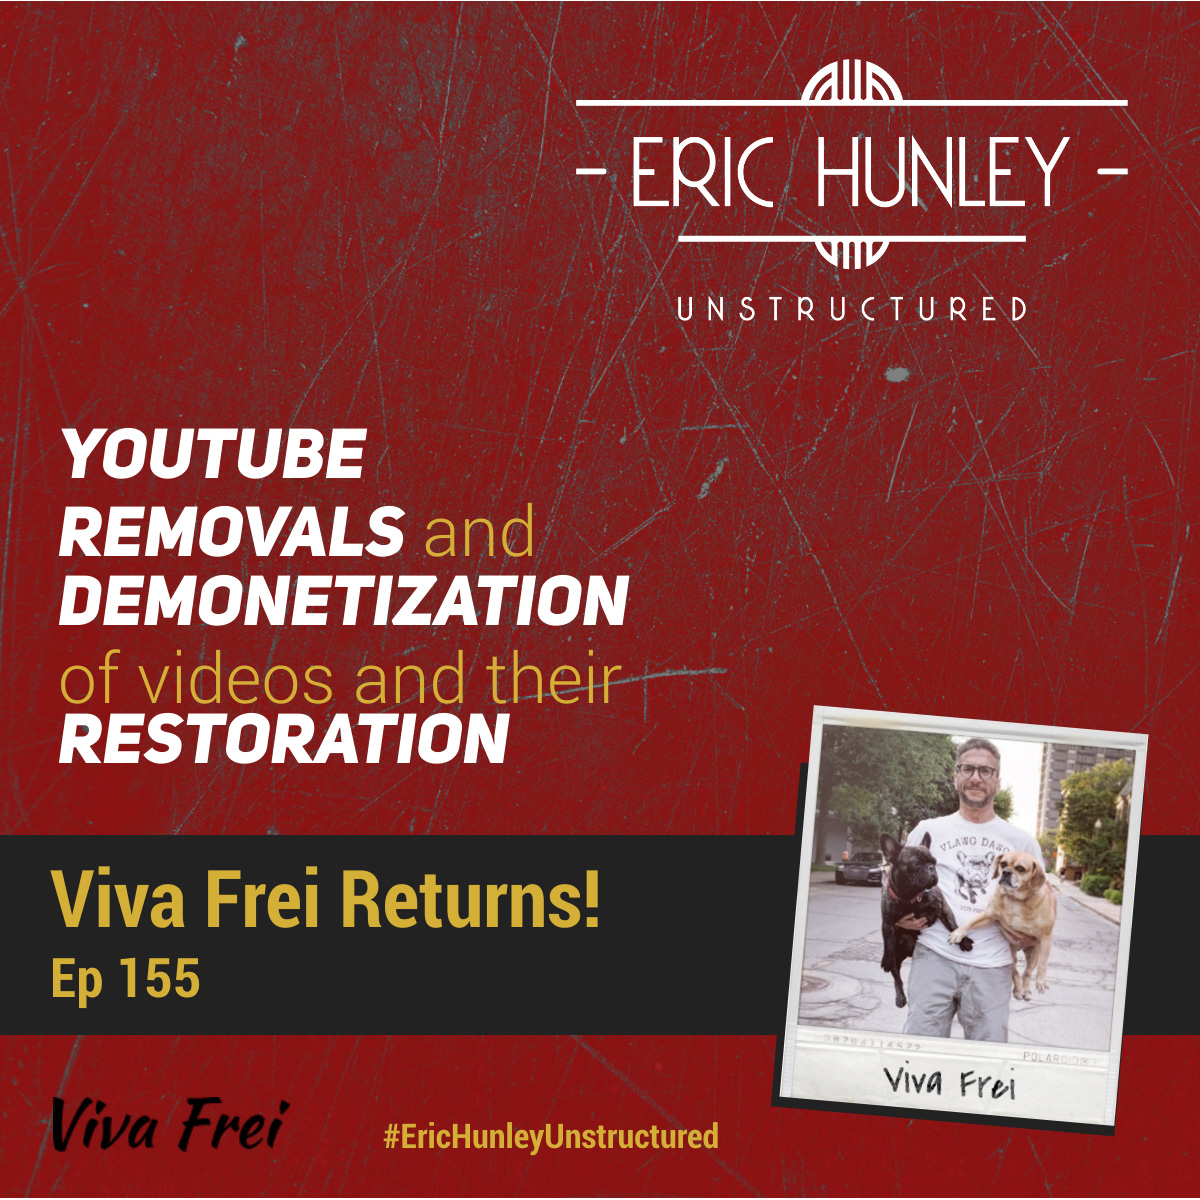 Eric Hunley Unstructured Podcast - 155 Viva Frei Square Post YouTube removals